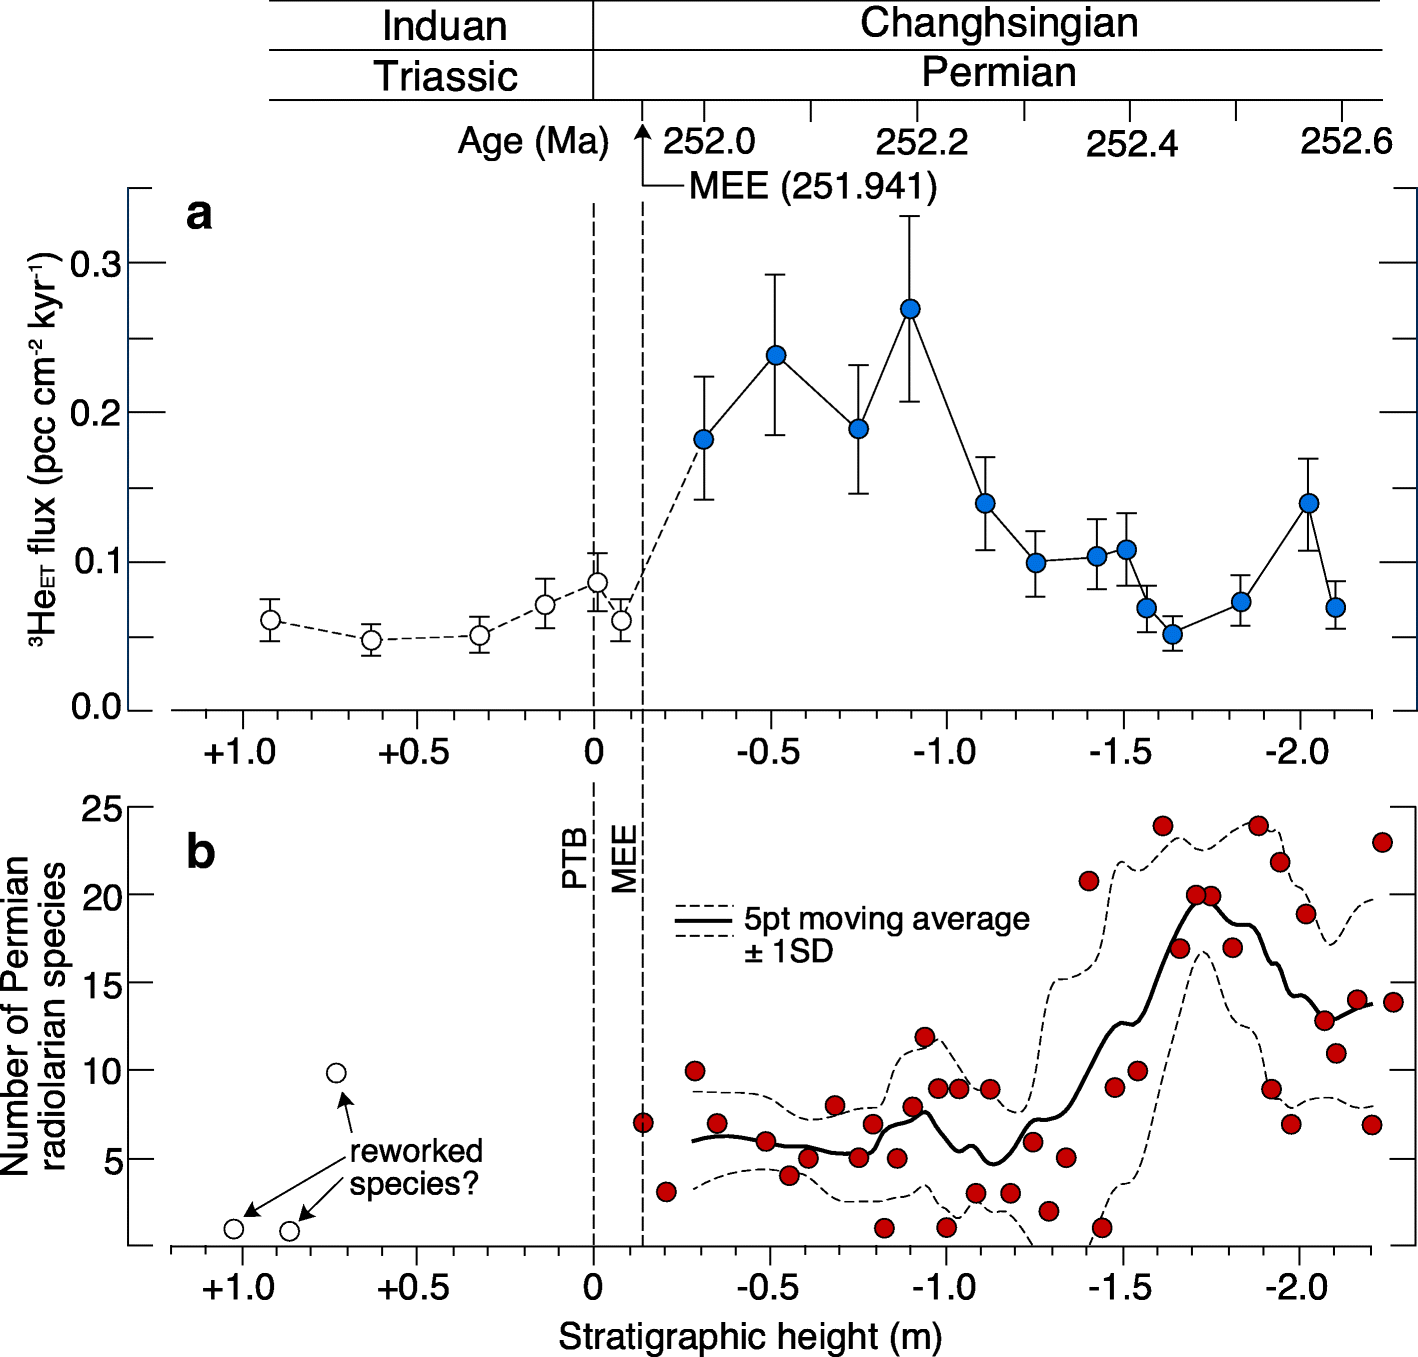 the peak flux of dust particles occurred during the final 500 kyr of  the permian, concurrent with a pre-extinction decline in radiolarian  diversity